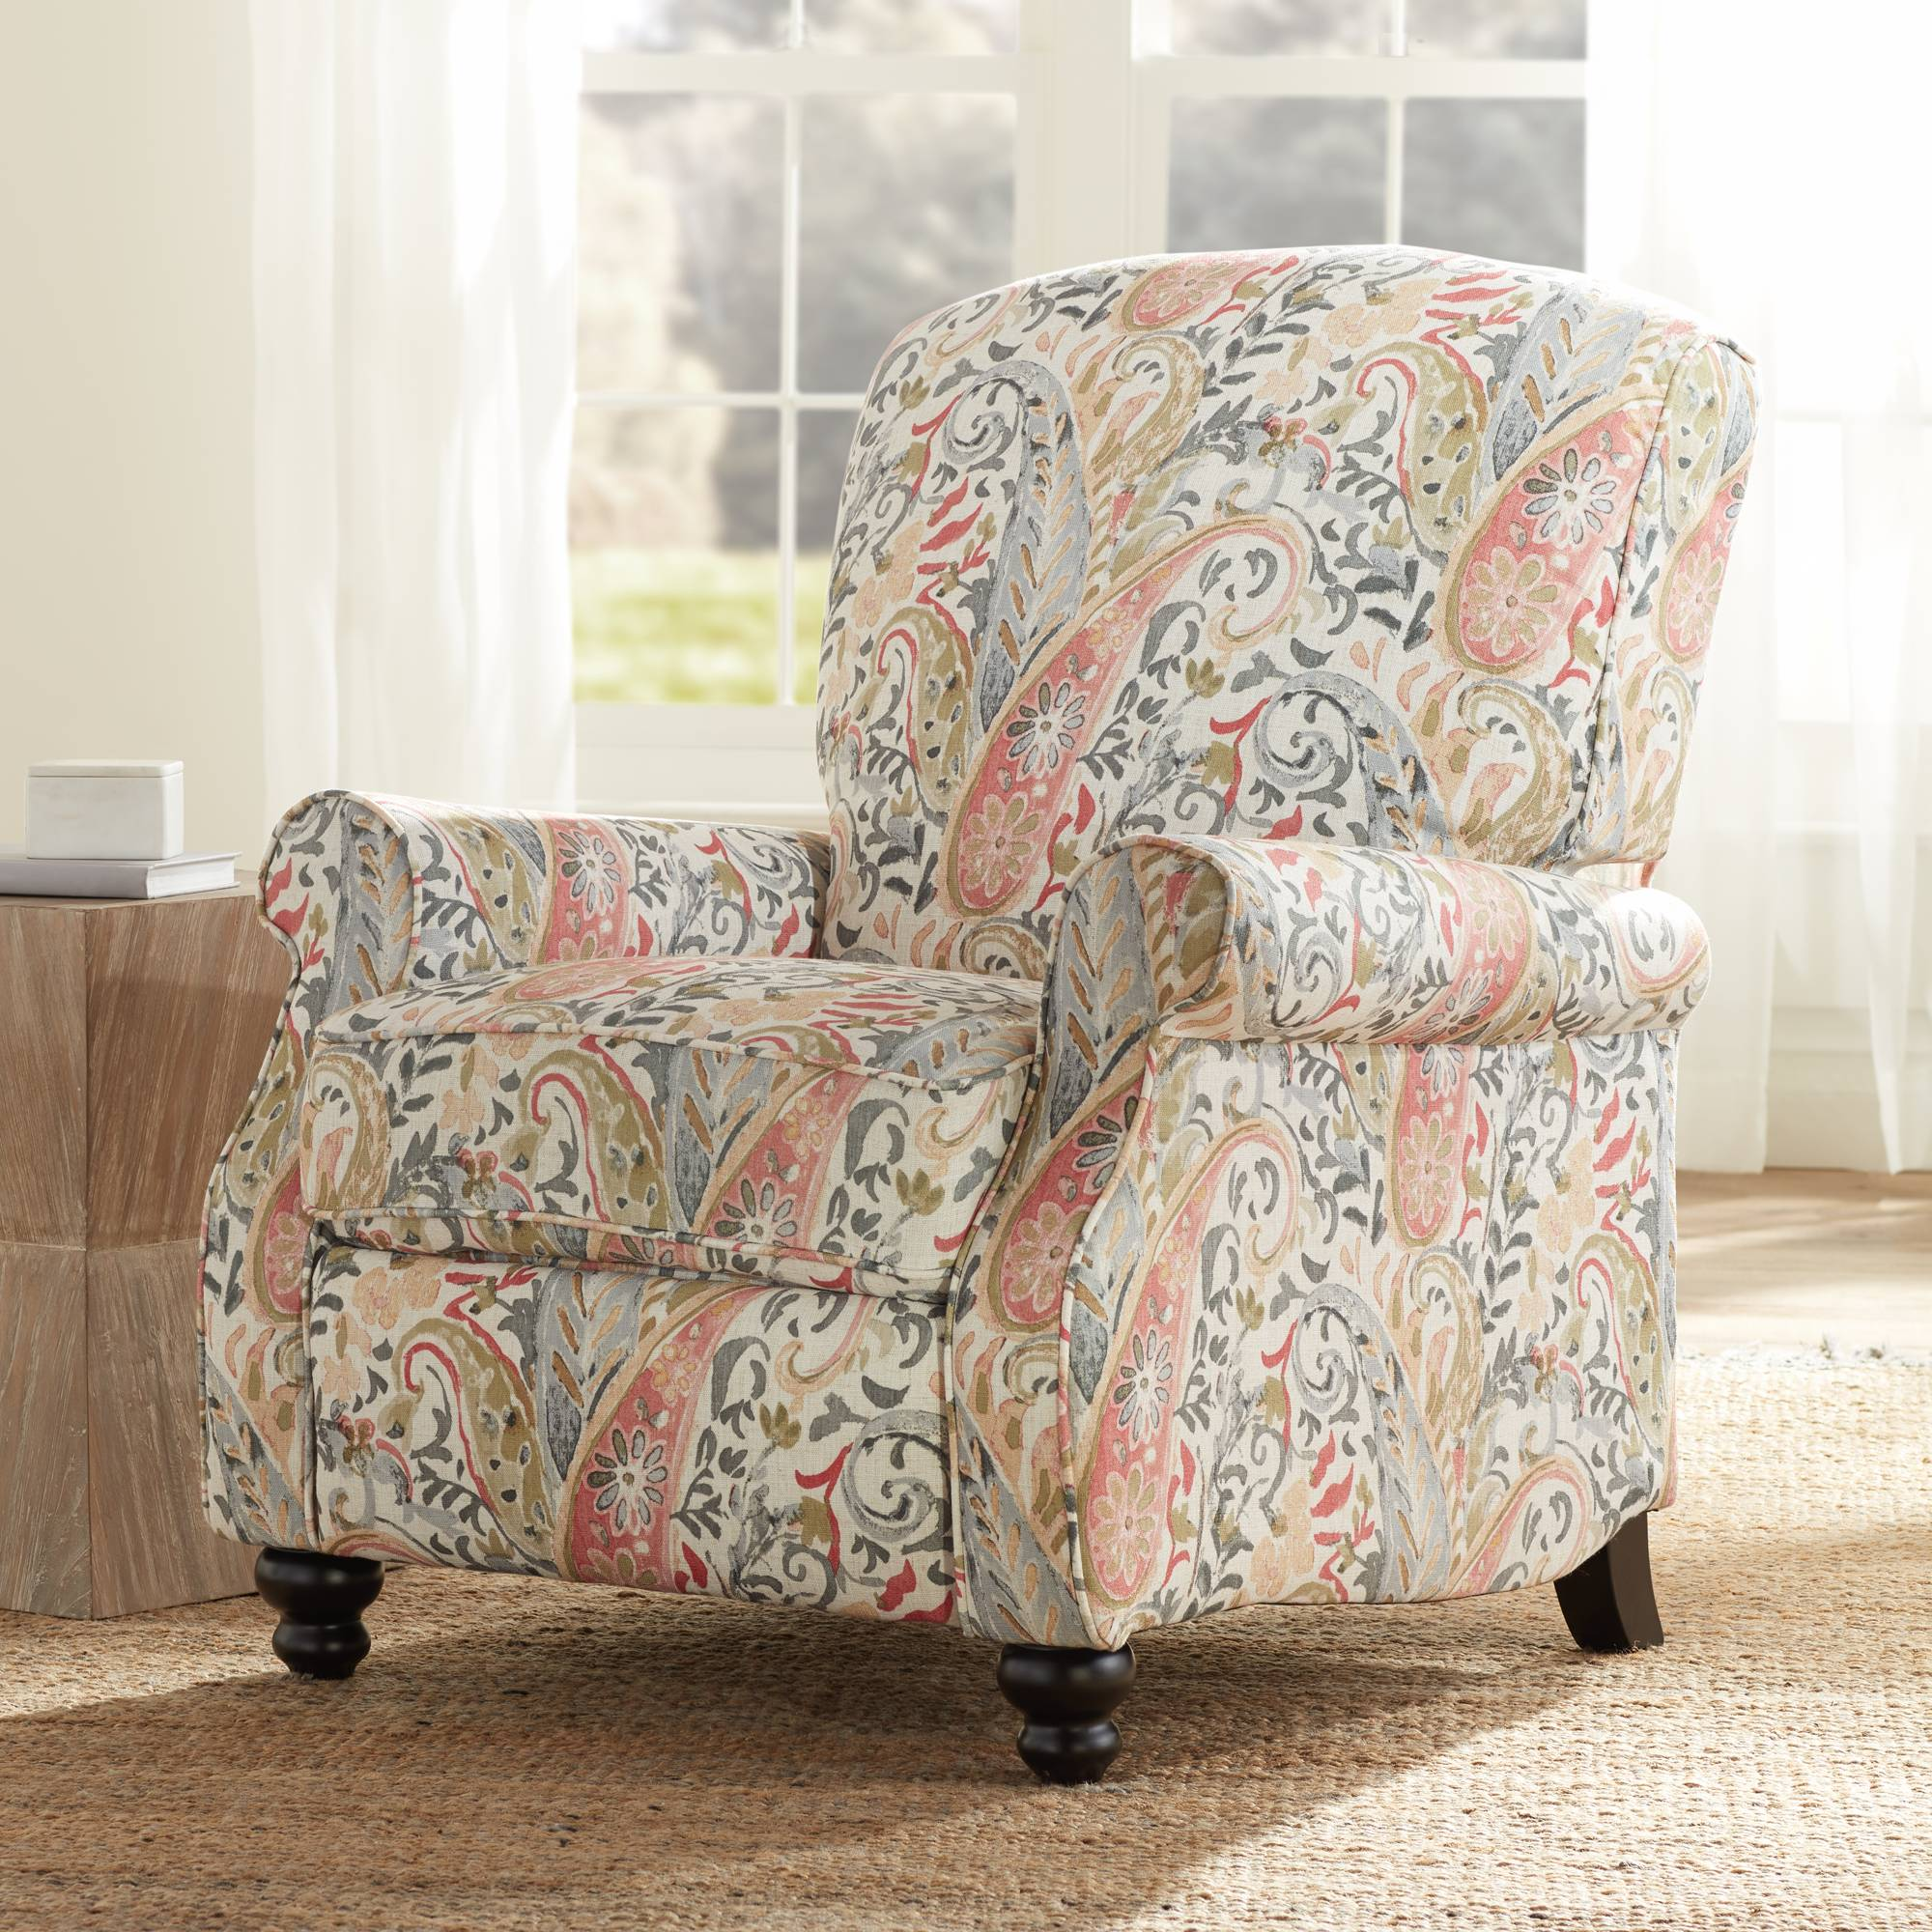 Stupendous Details About Ethel Coral Paisley Push Back Recliner Chair Caraccident5 Cool Chair Designs And Ideas Caraccident5Info